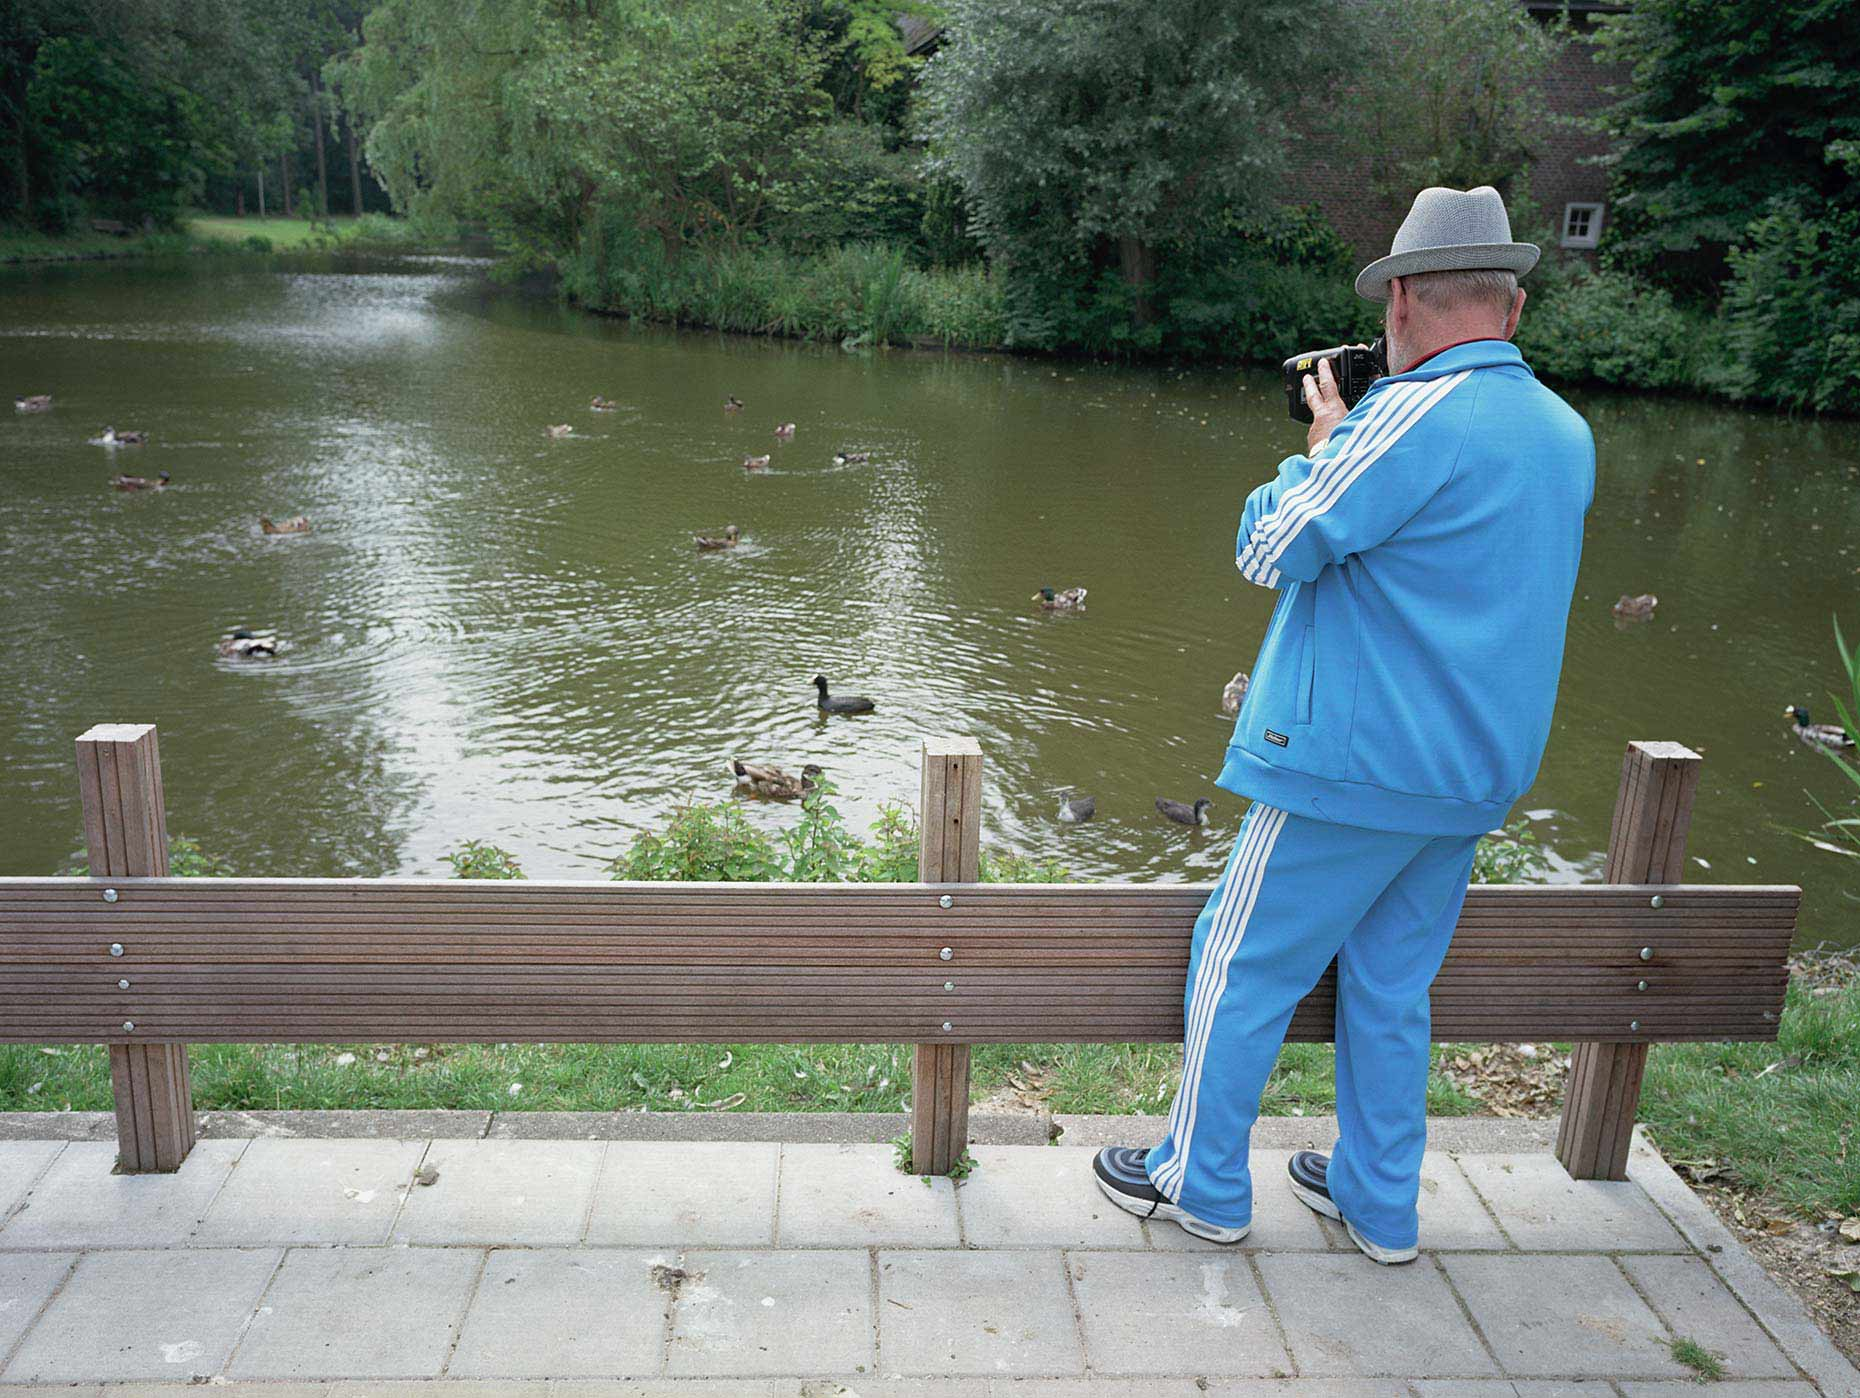 Man filming ducks in pond, man filmt eendjes in vijver